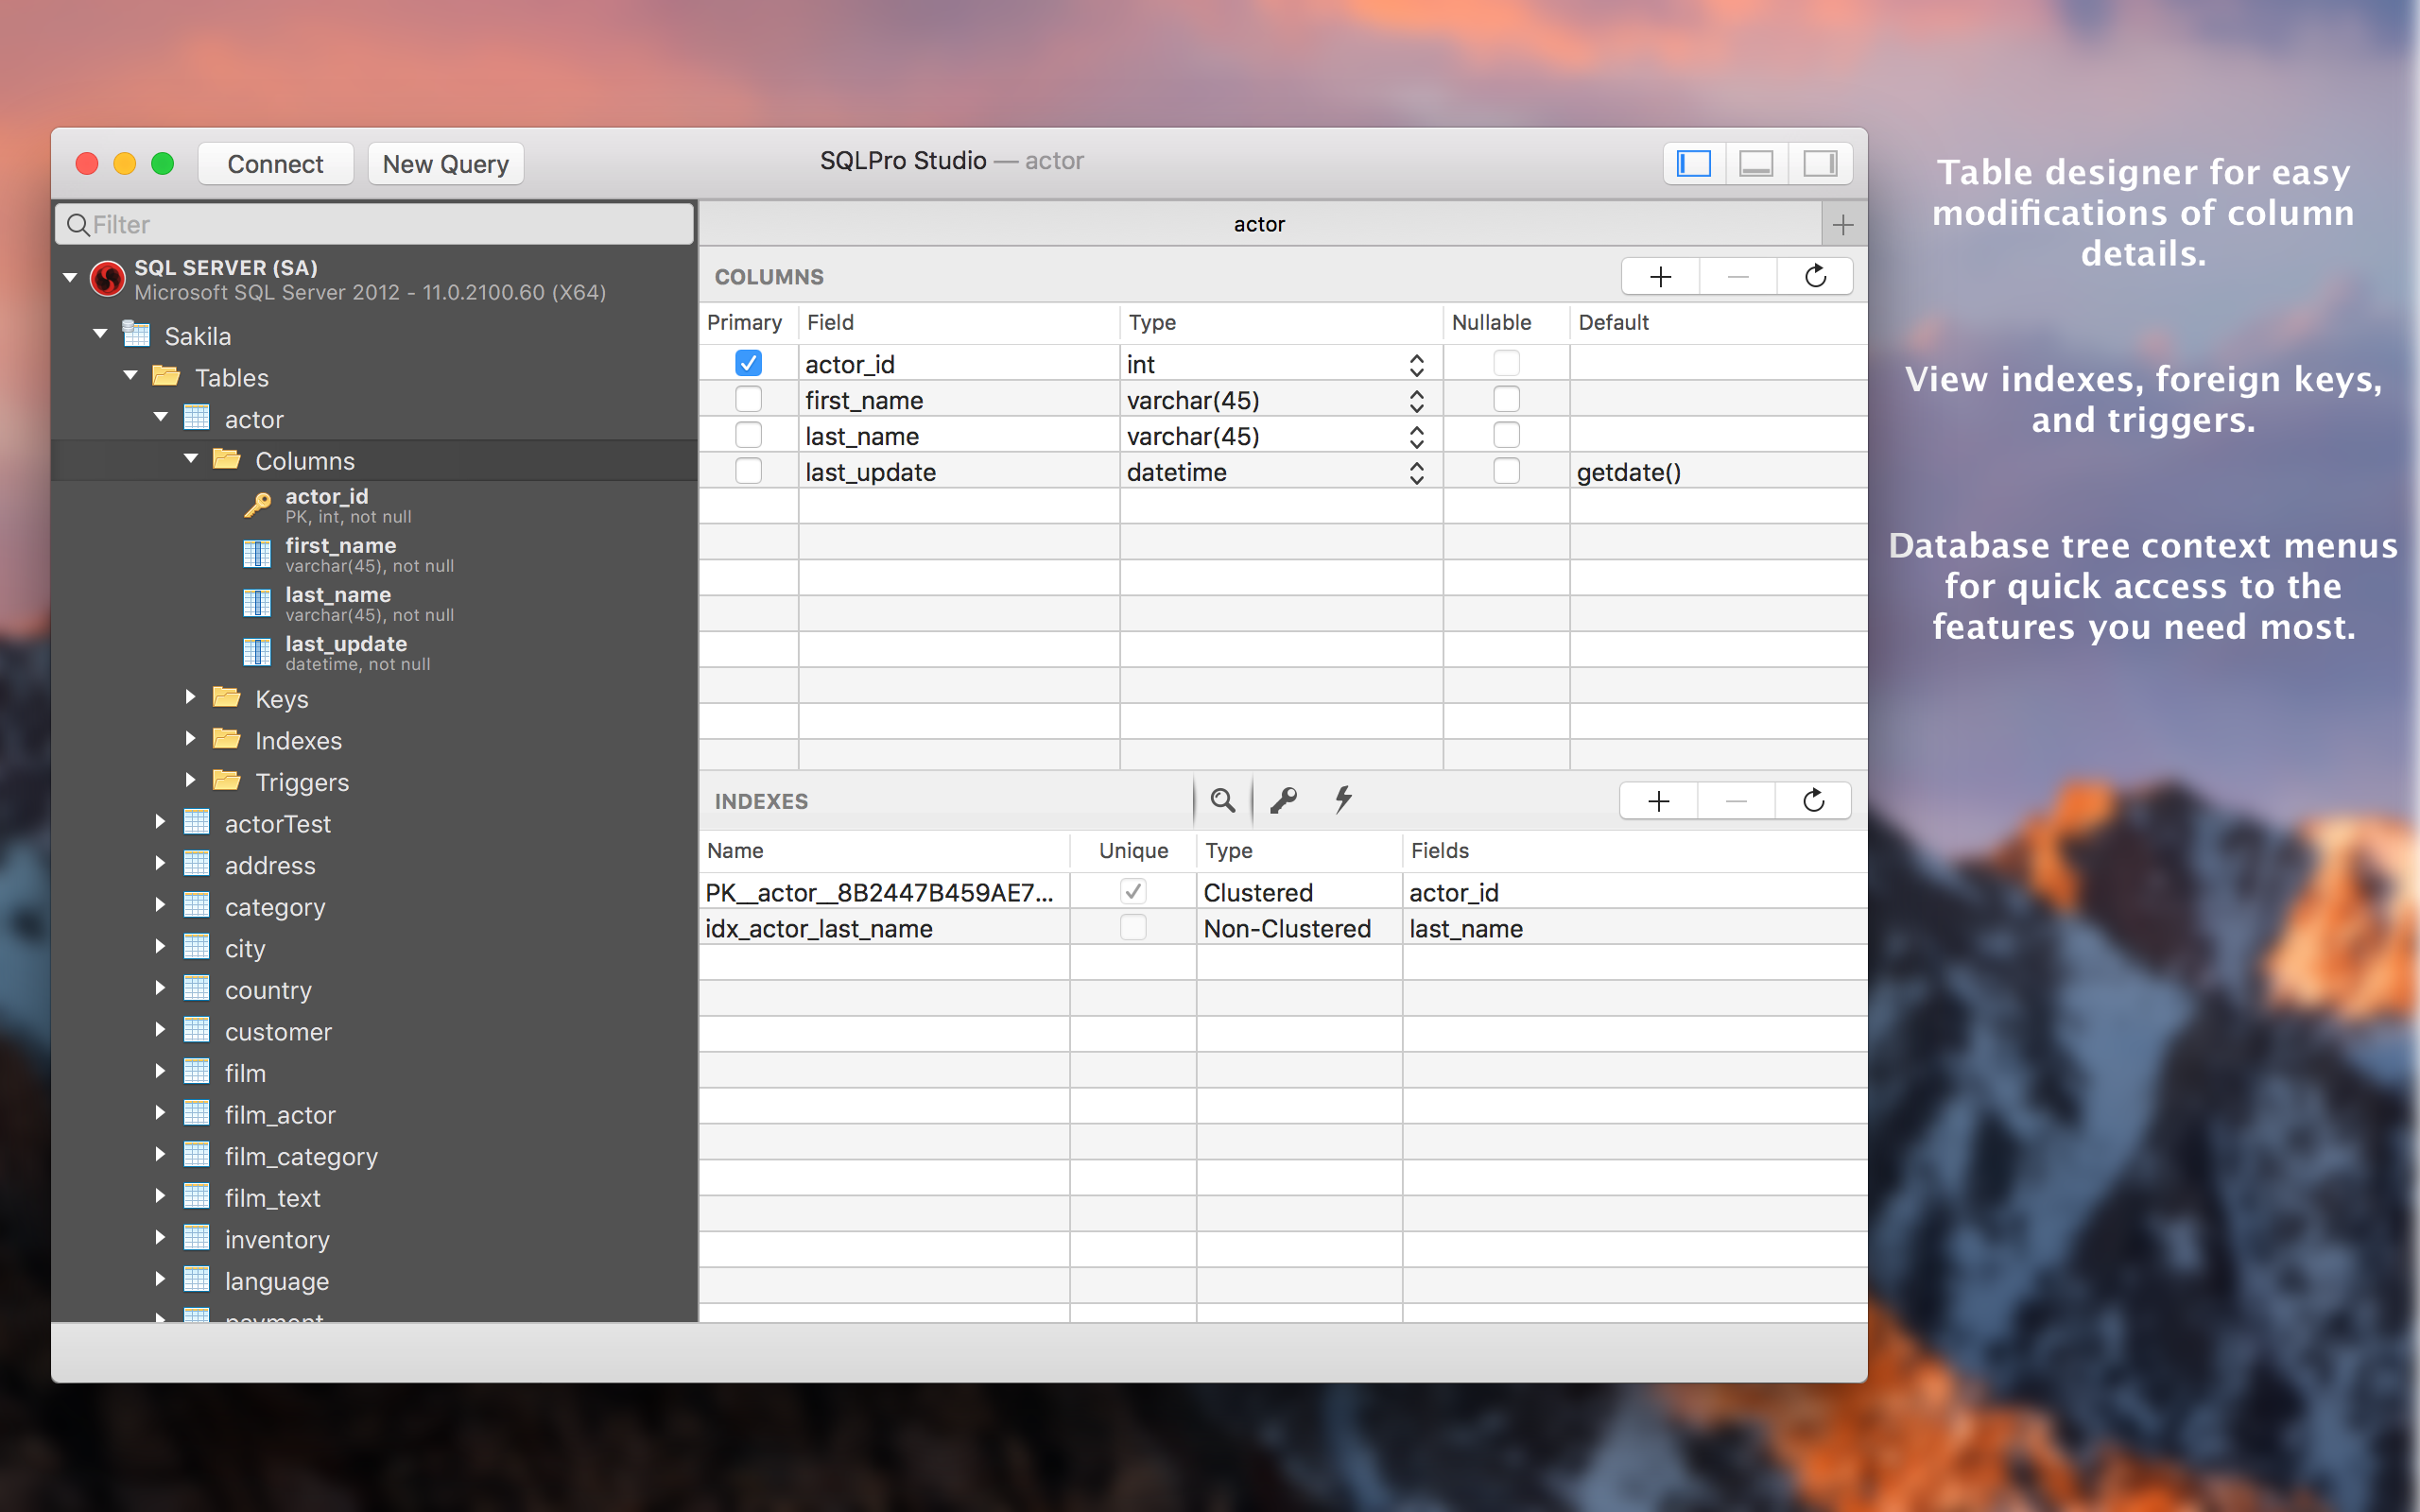 Database tree context menus for quick access to the features you need most.